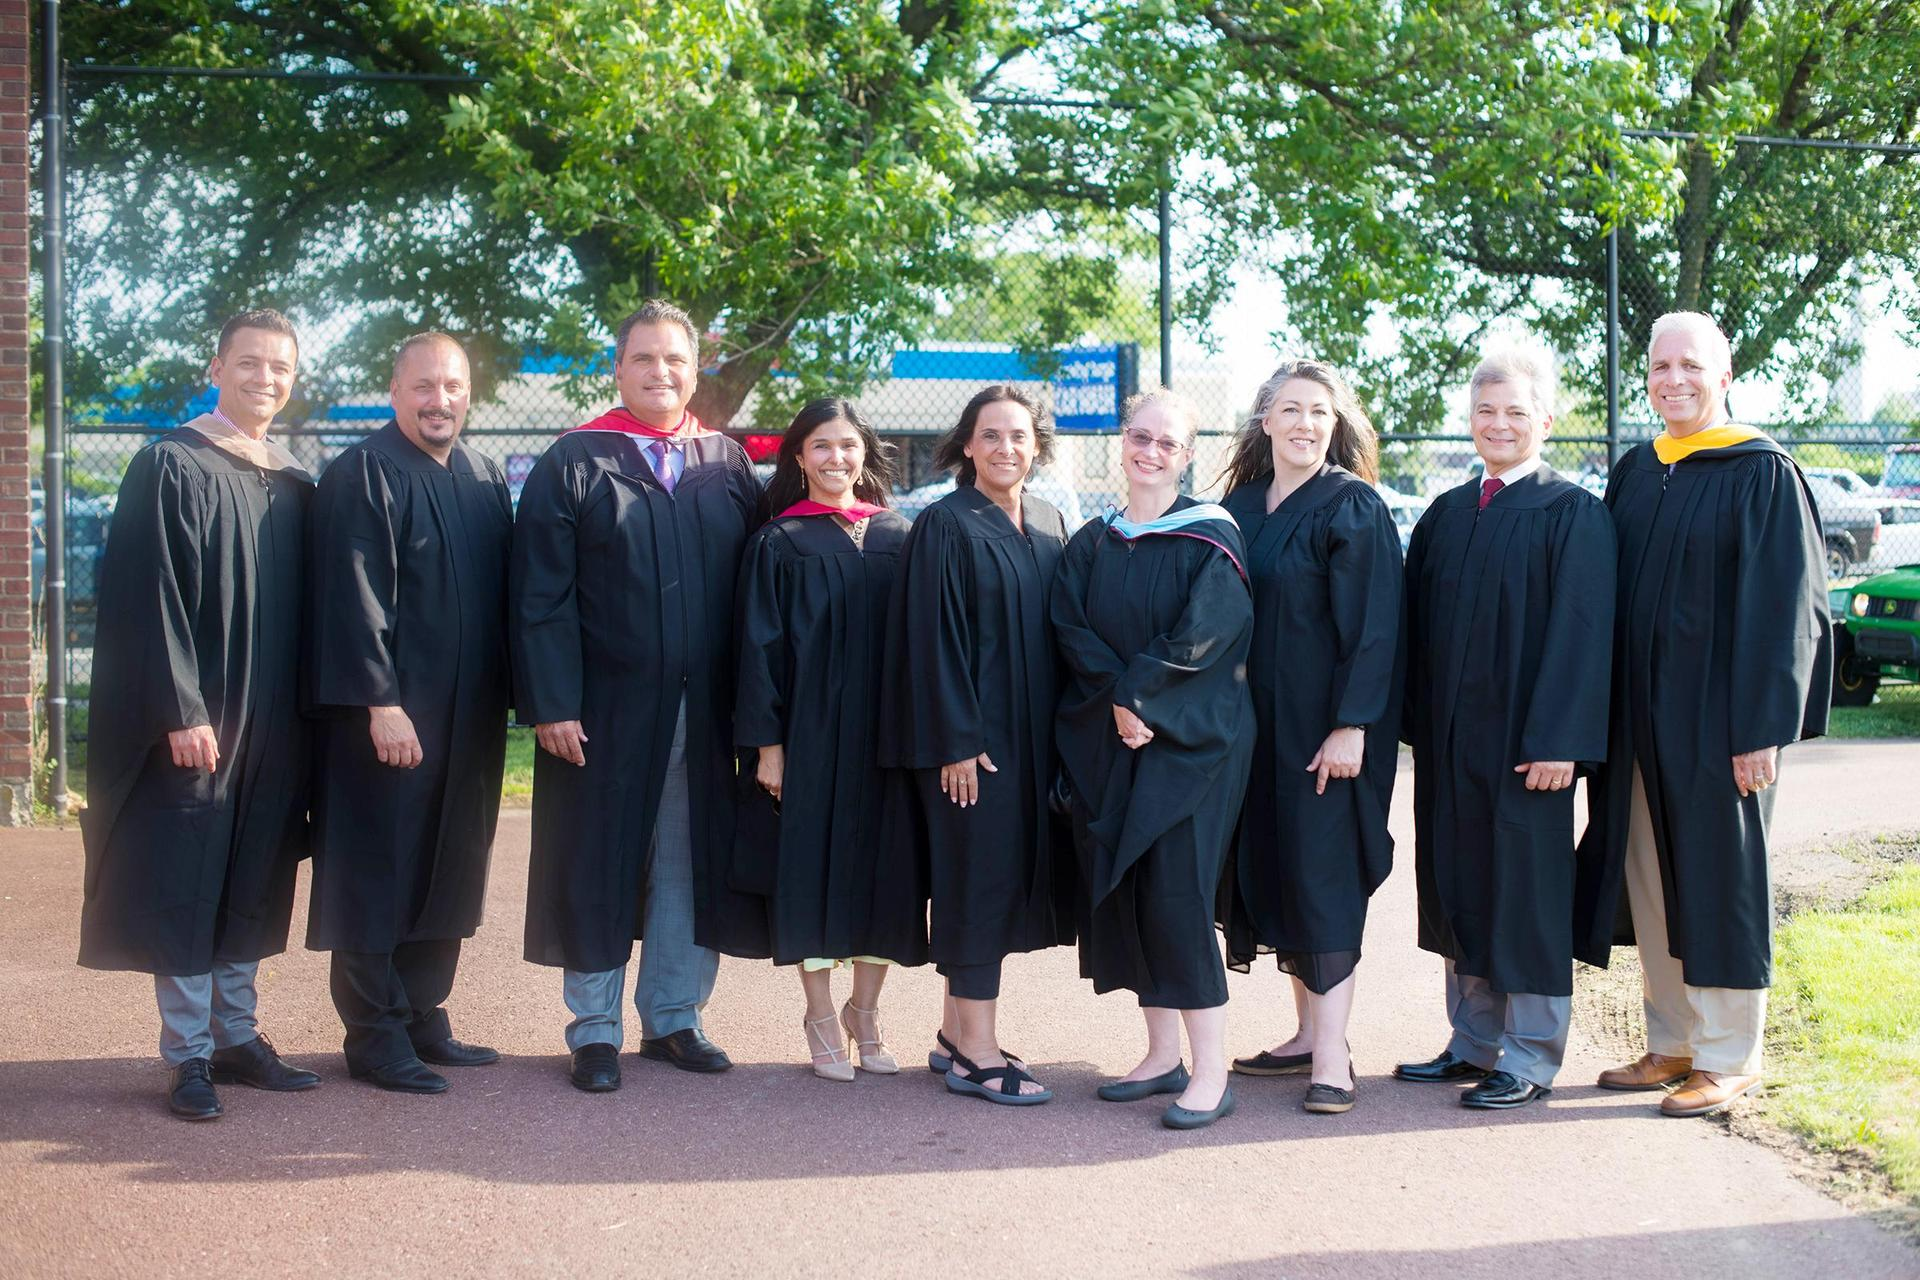 Elected officials and Superintendent Priya Tahiliani, in graduation gowns, prior to the commencement exercises